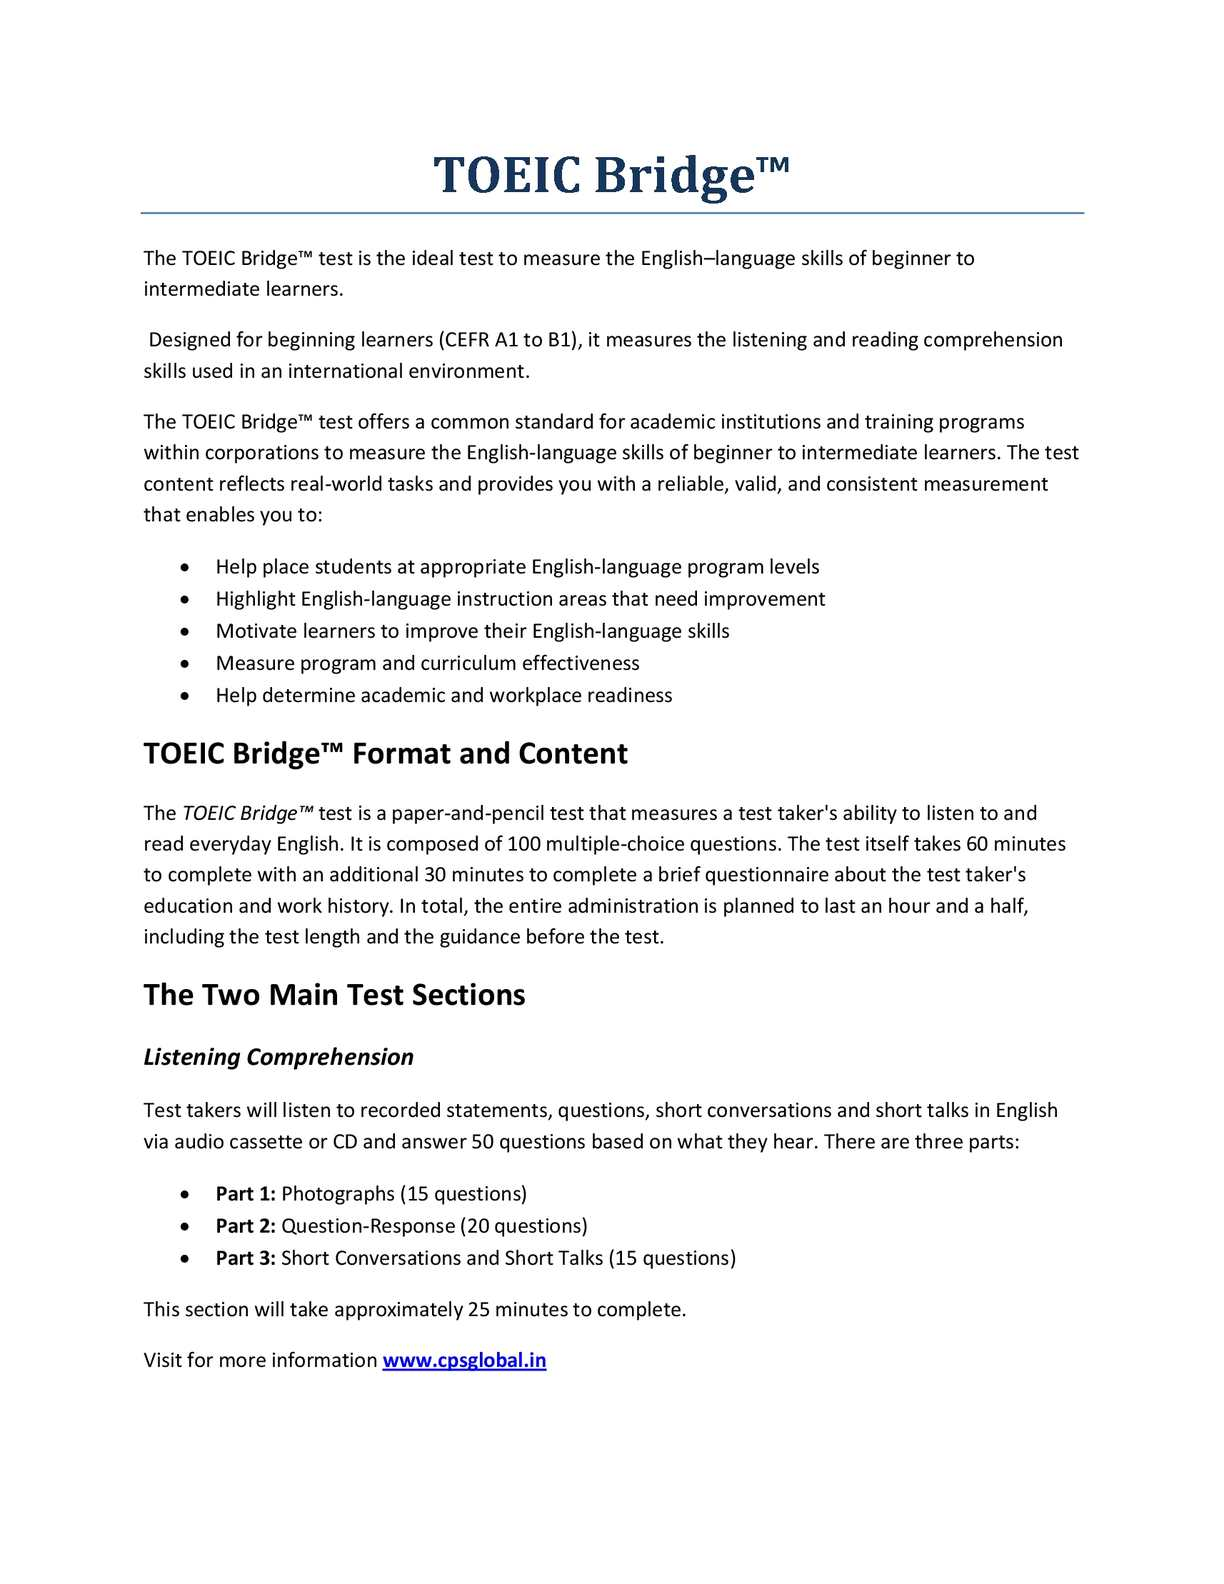 Calaméo - TOEIC Bridge - Ideal English Language Test